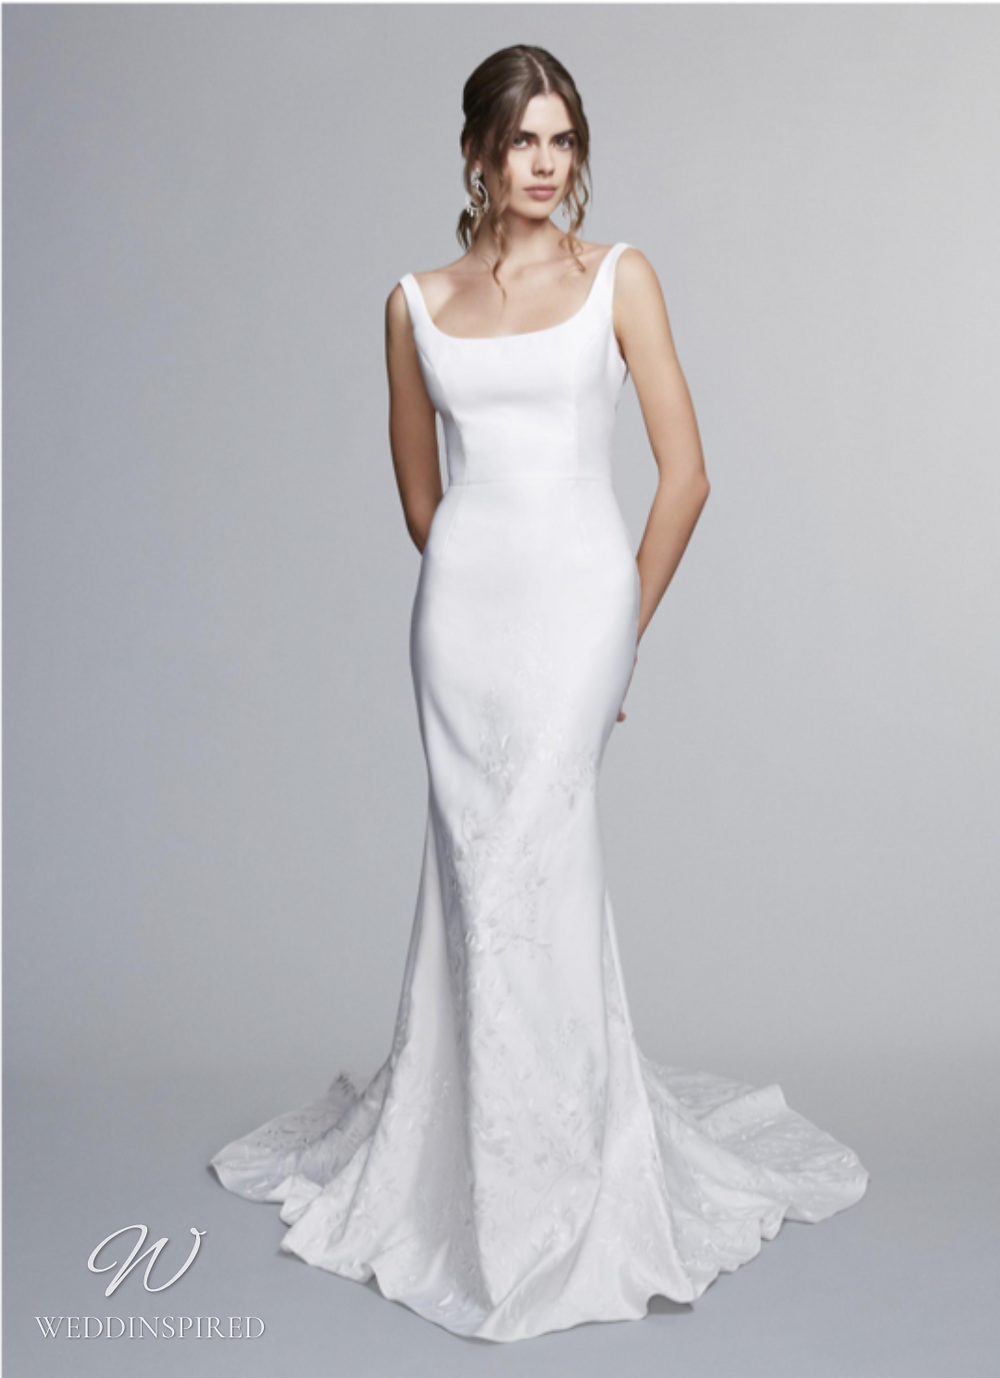 A Marchesa Notte Fall 2021 simple satin mermaid wedding dress with straps